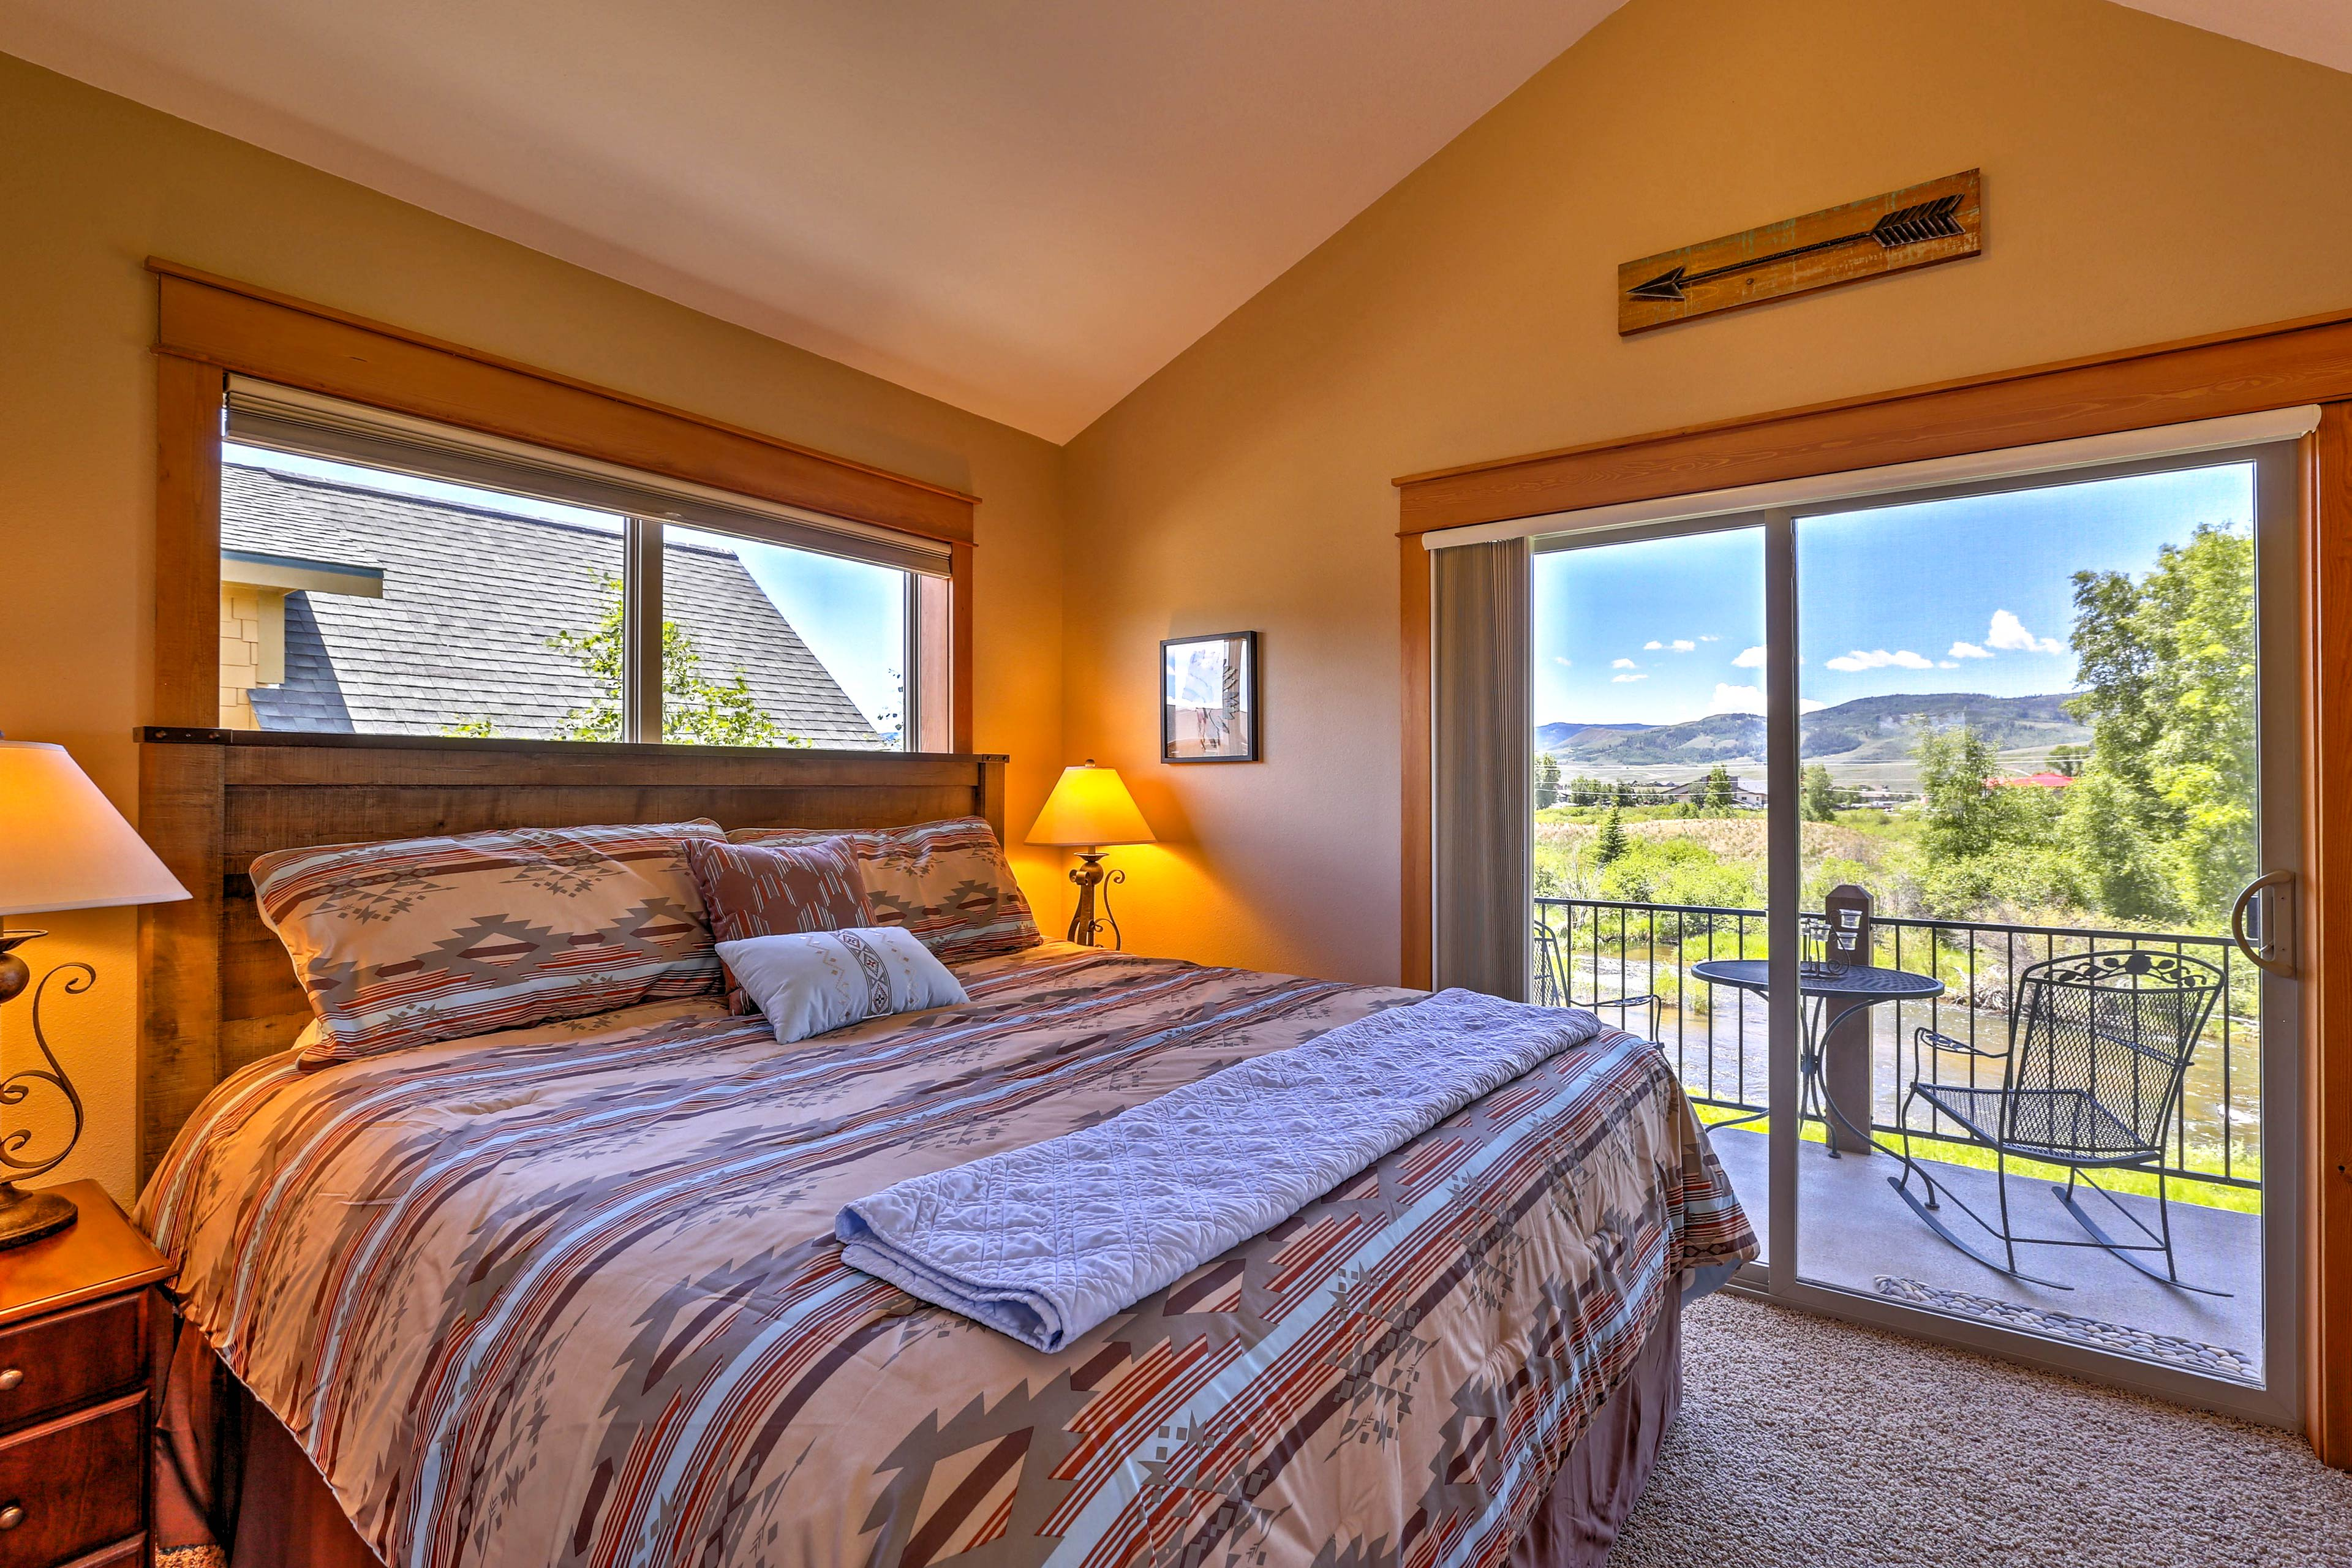 Mountain vistas frame the king bed in the master bedroom.